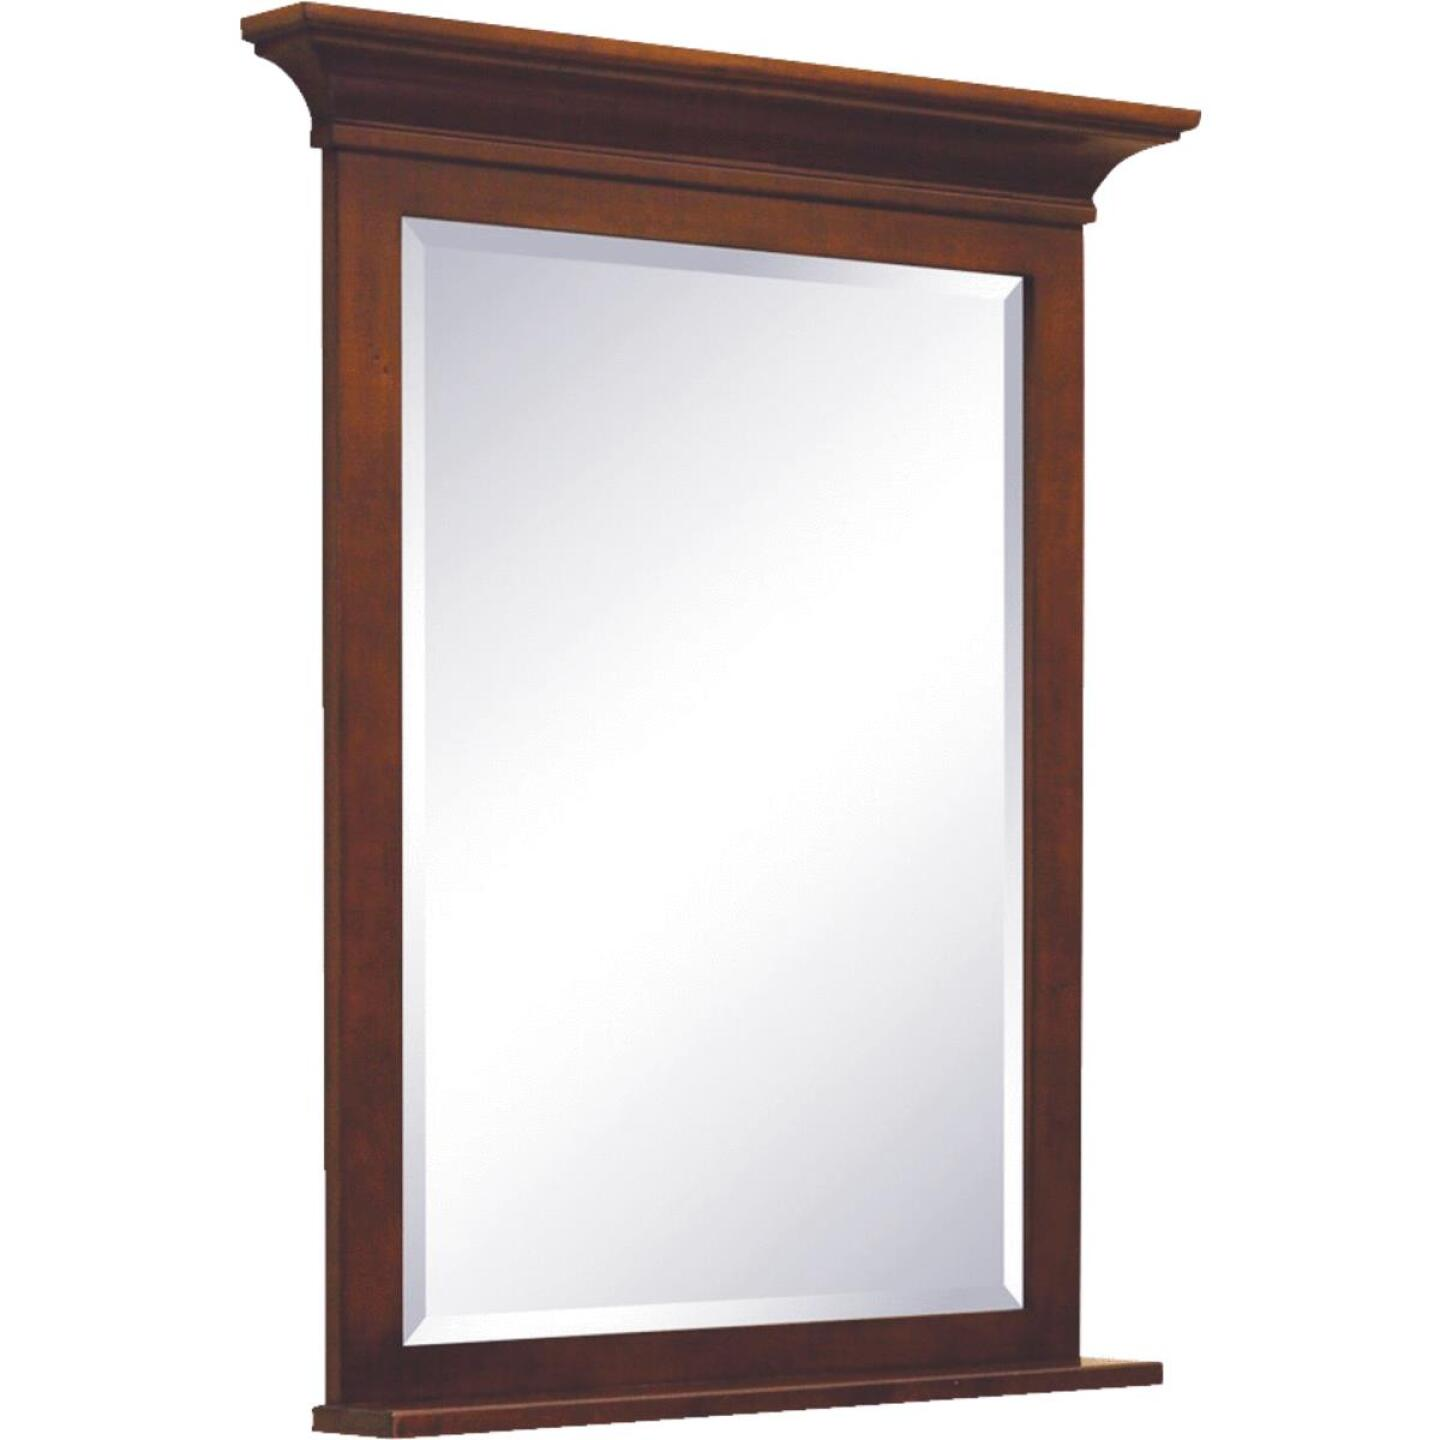 Sunny Wood Grand Haven Cherry 30 In. W x 36 In. H Vanity Mirror Image 1